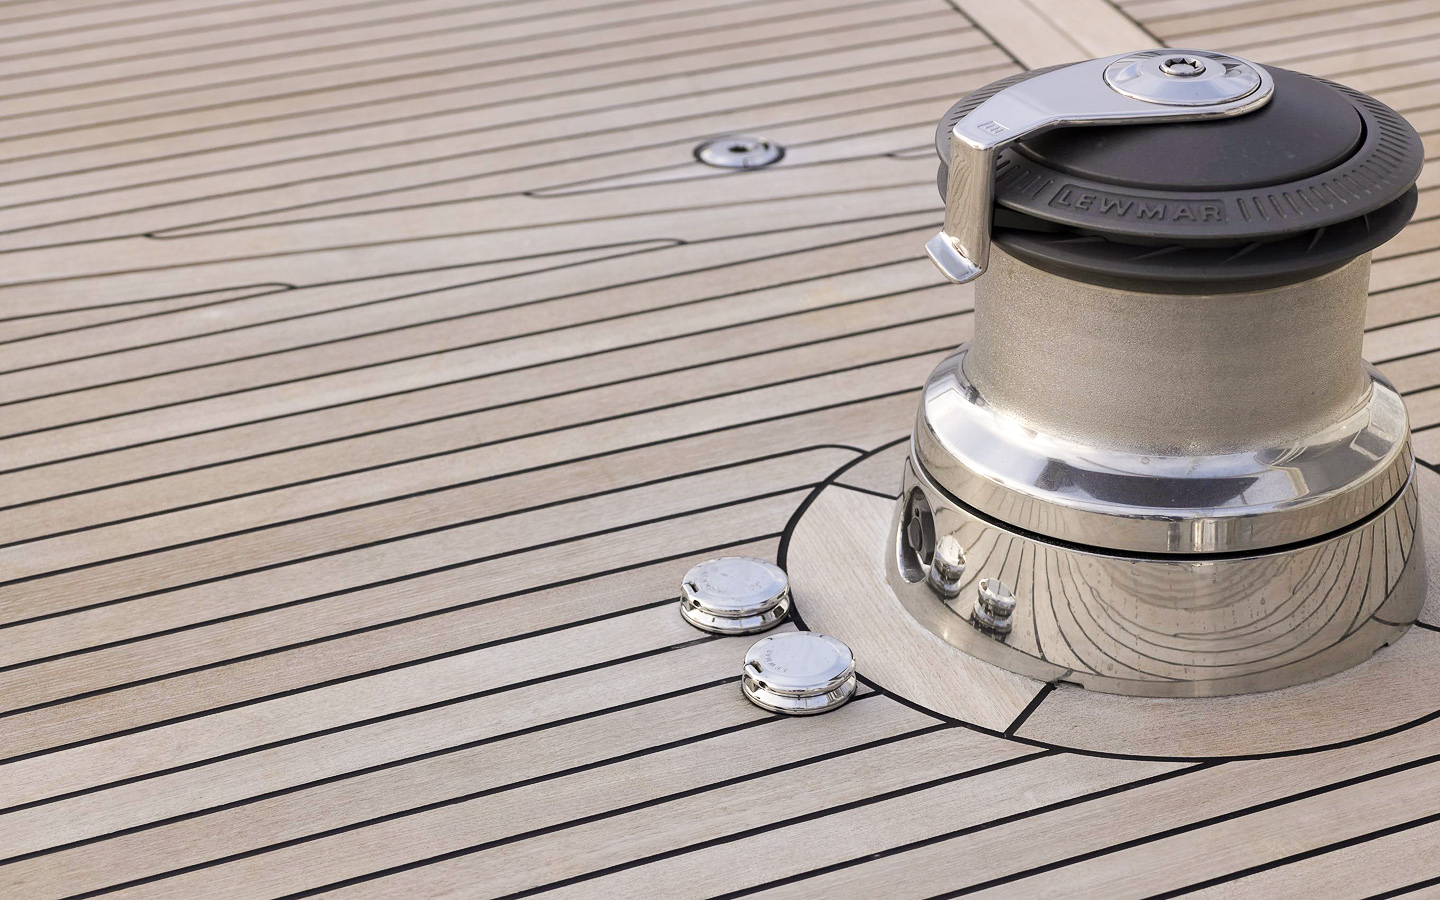 Yacht DRUMBEAT - Alloy Yachts - Power Winch Detail